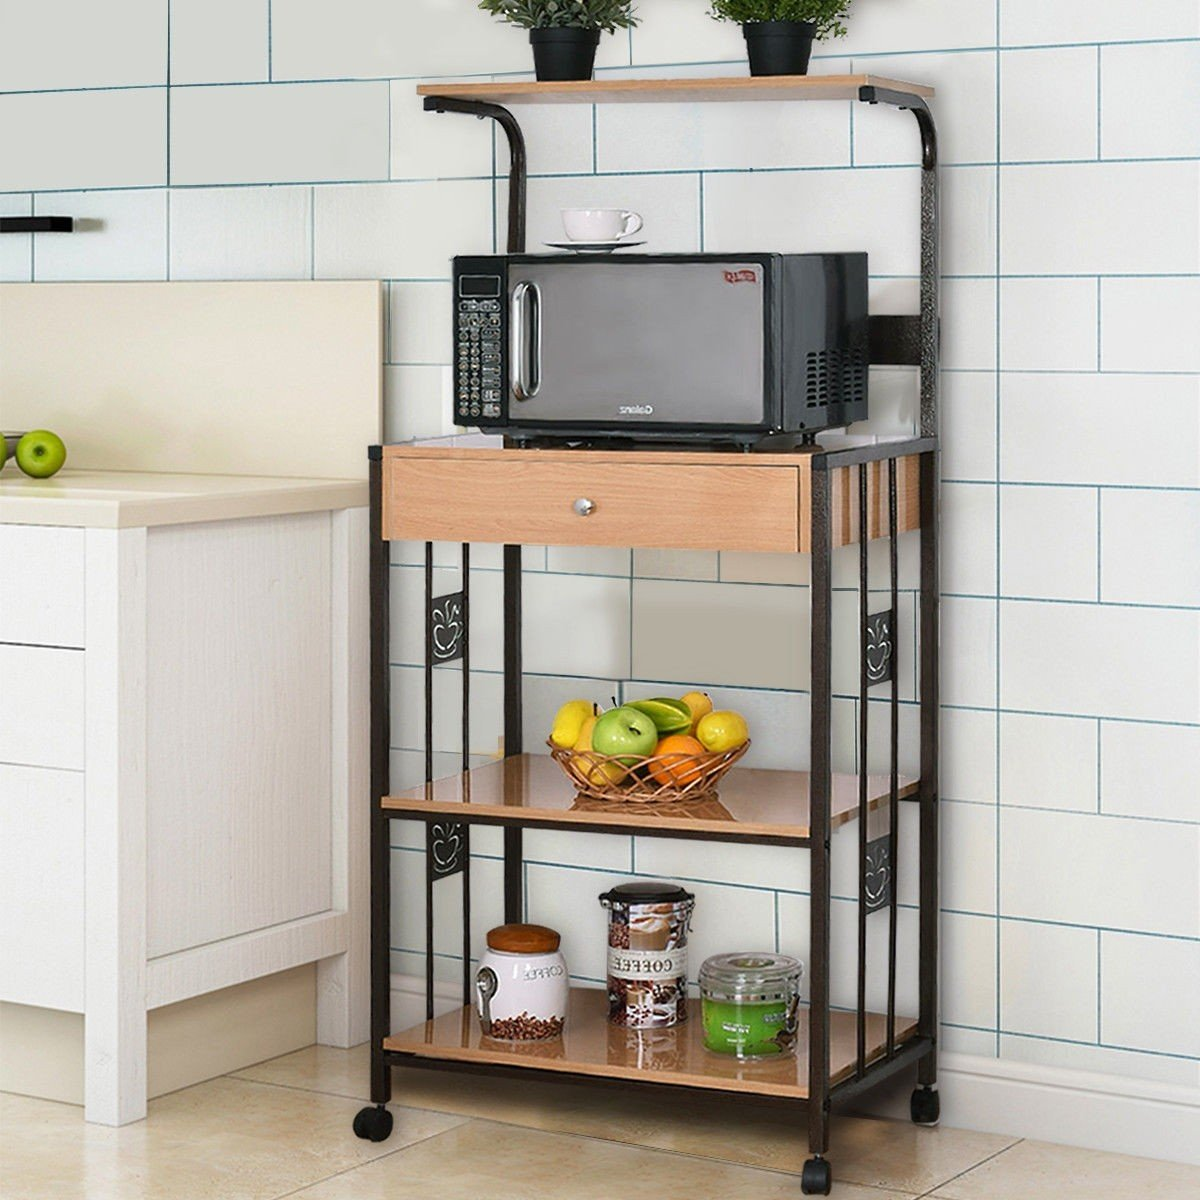 WATERJOY Bakers Rack Microwave Cart, Supreme 3-Tier Rolling Kitchen Microwave Oven Stand Storage Cart | Power Strip | Brown Metal Frame by WATERJOY